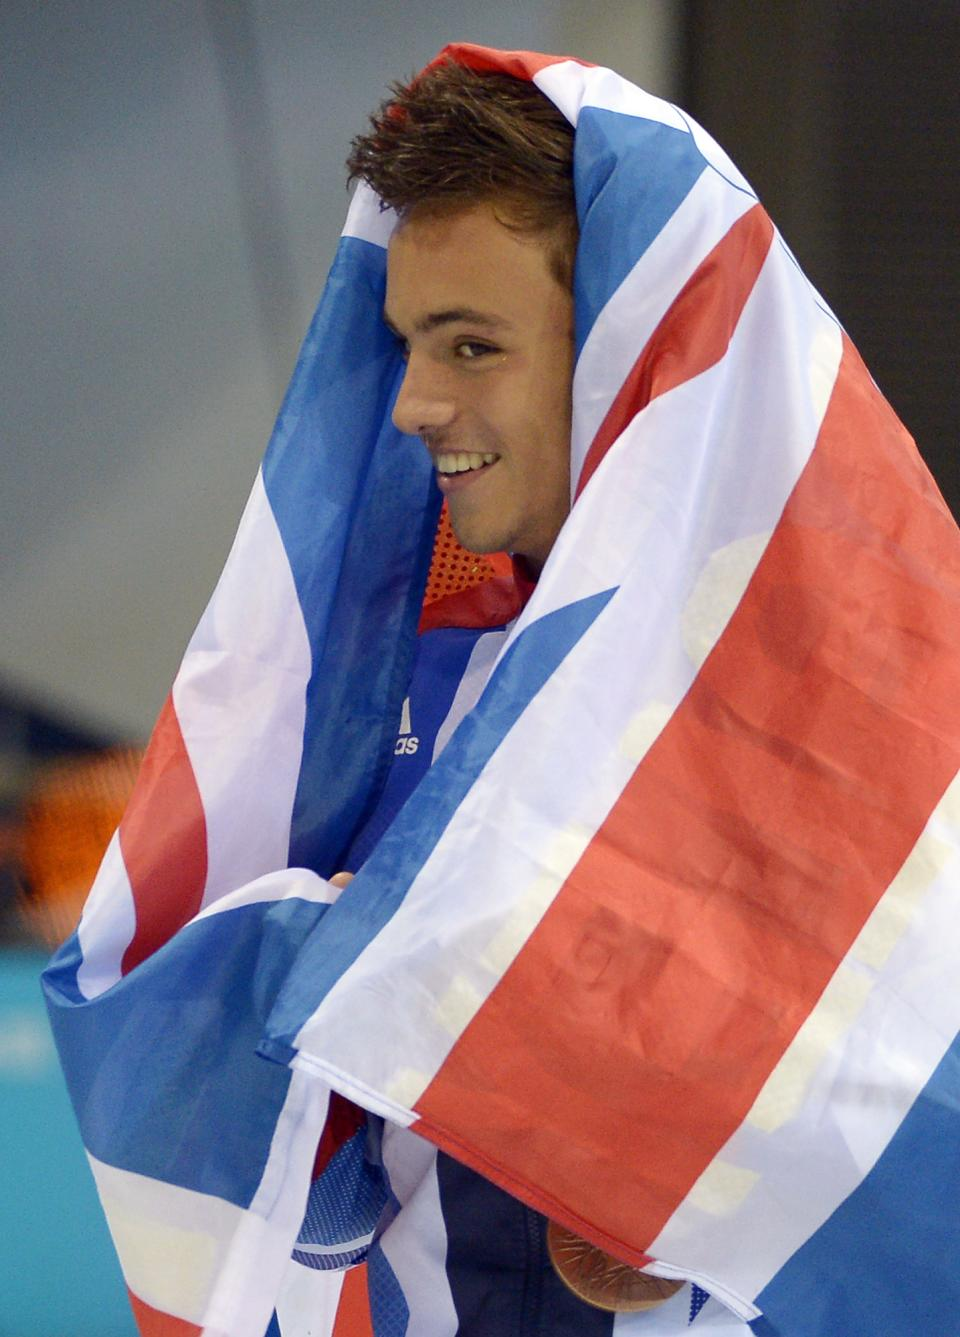 Thomas Daley of Great Britain wraps a flag around himself after the men's 10-meter platform diving final at the Aquatics Centre in the Olympic Park during the 2012 Summer Olympics in London, Saturday, Aug. 11, 2012. Daley won the bronze medal in the event. (AP Photo/Mark J. Terrill)